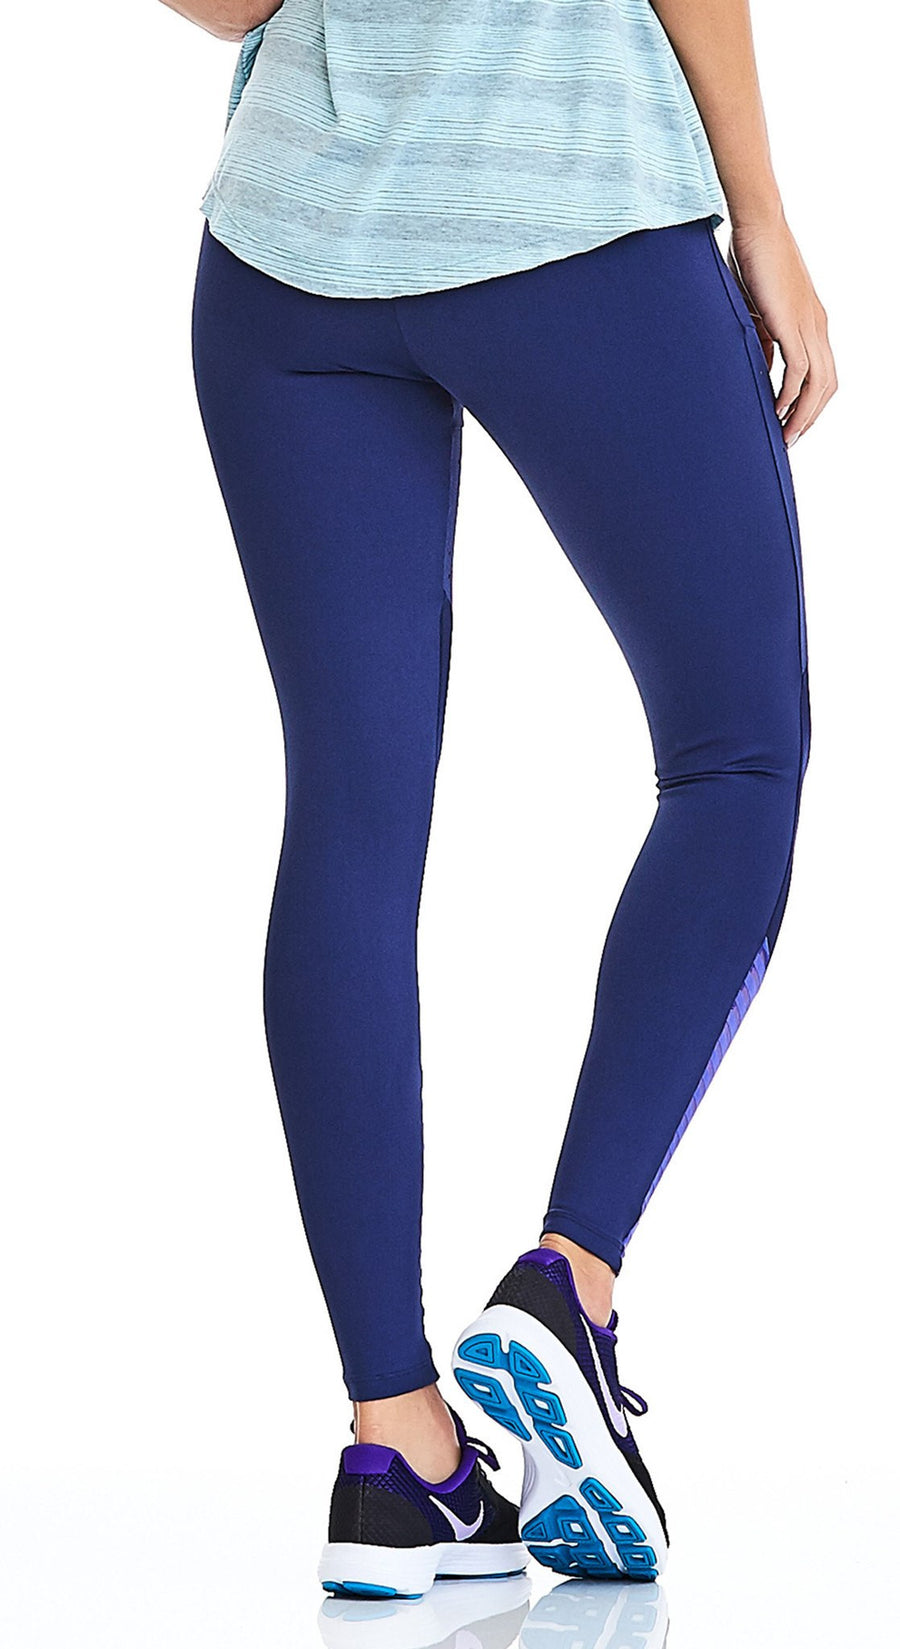 Active Yoga Pants  - Laser Mesh Premium Navy Blue